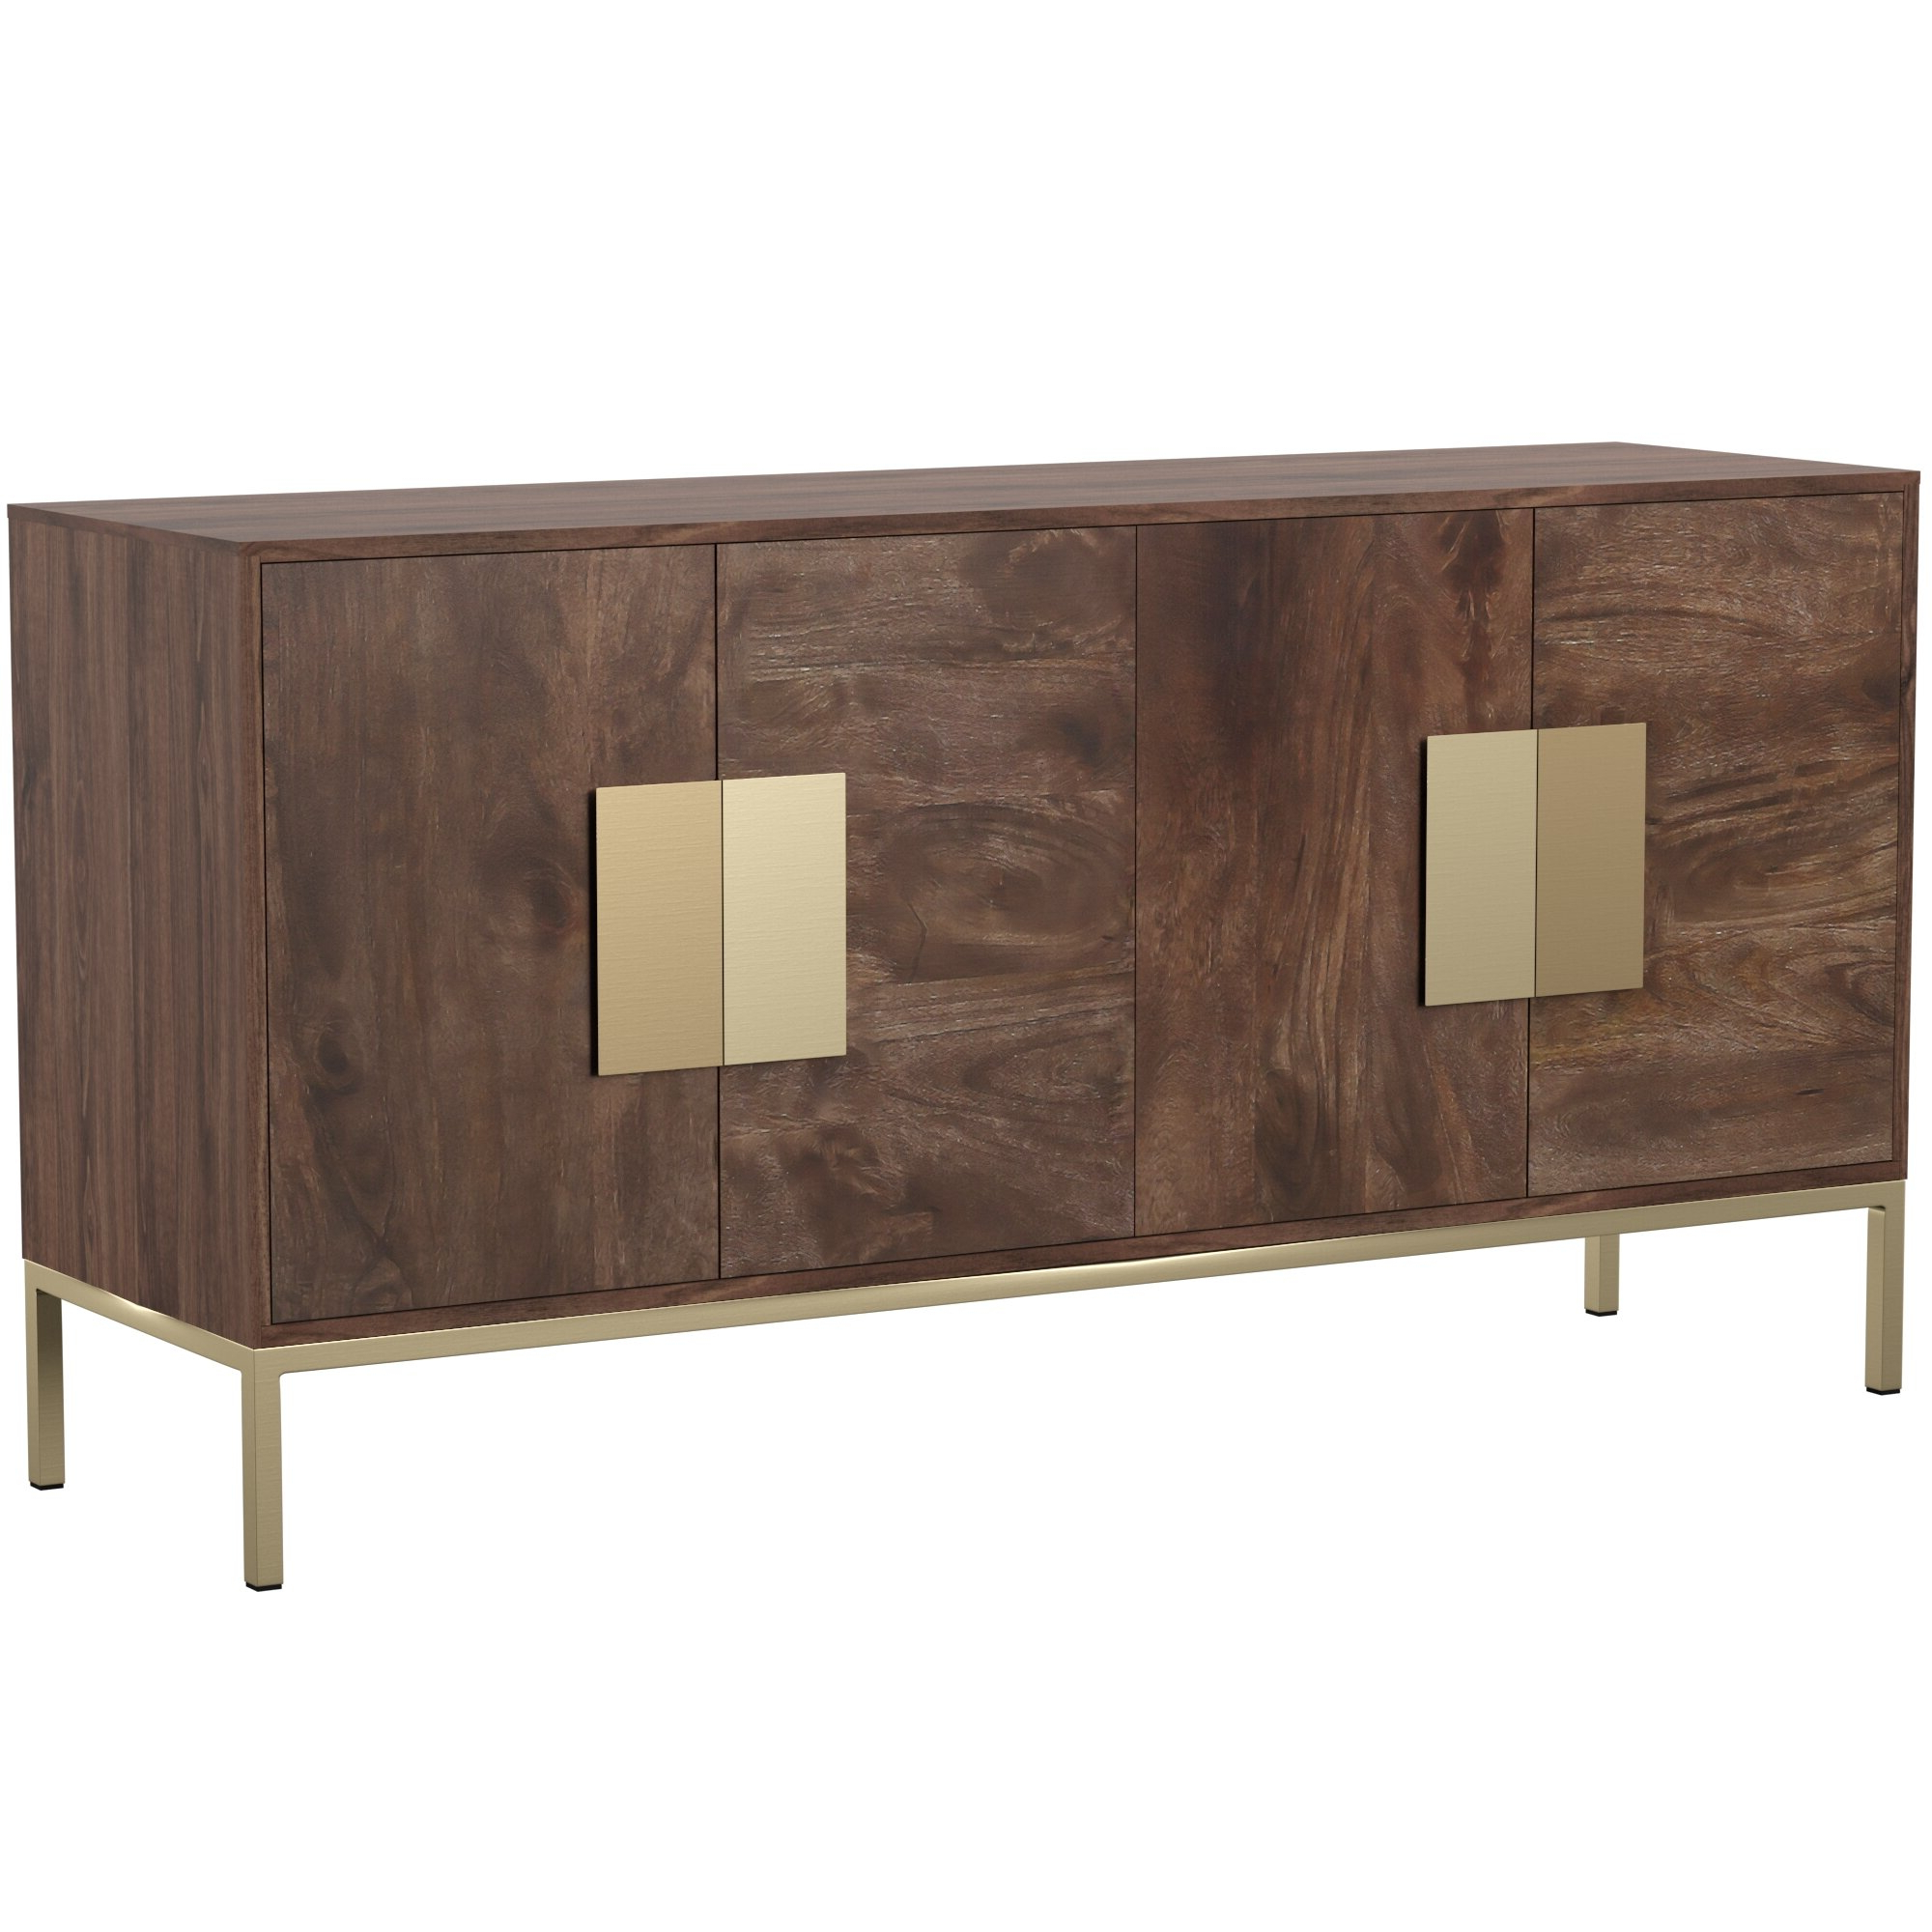 Kyte Sideboard With Regard To Cher Sideboards (View 14 of 20)